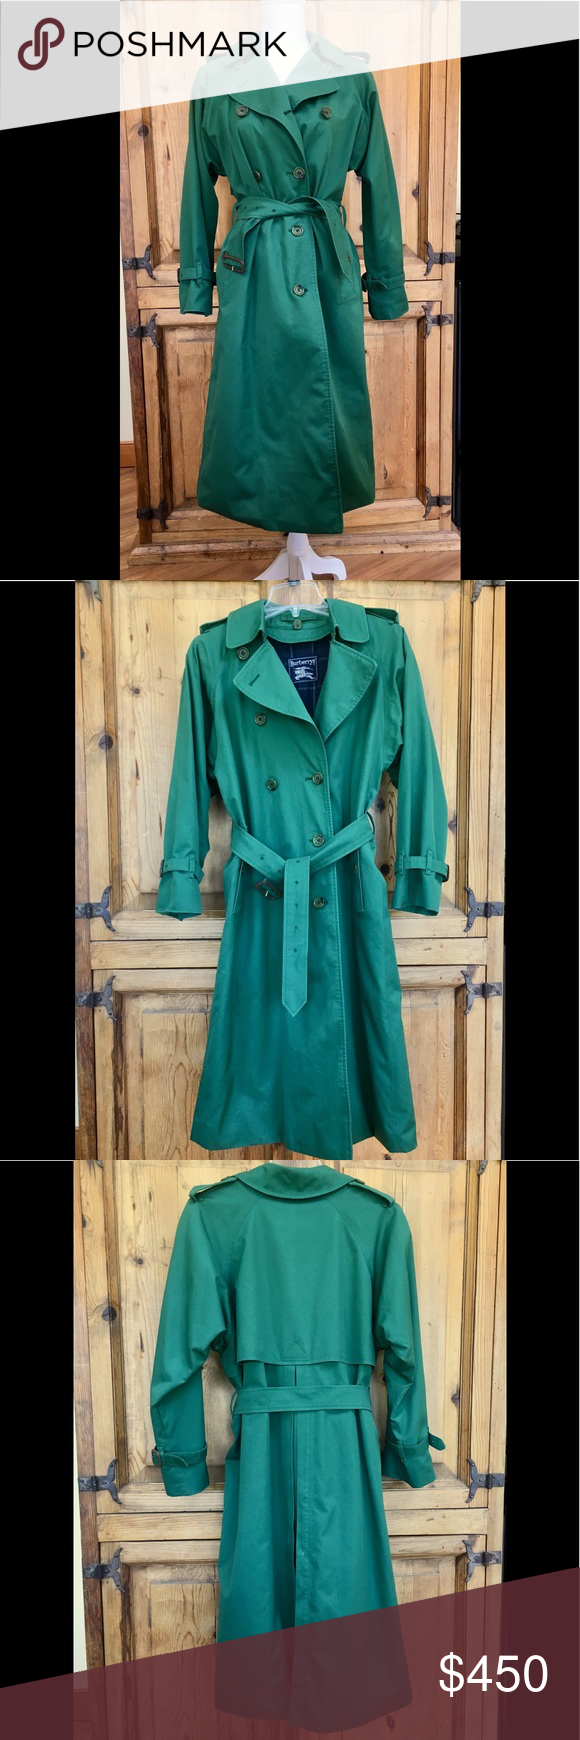 Authentic Burberry Trench Coat Burberry Trench Coat Clothes Design Burberry Trench